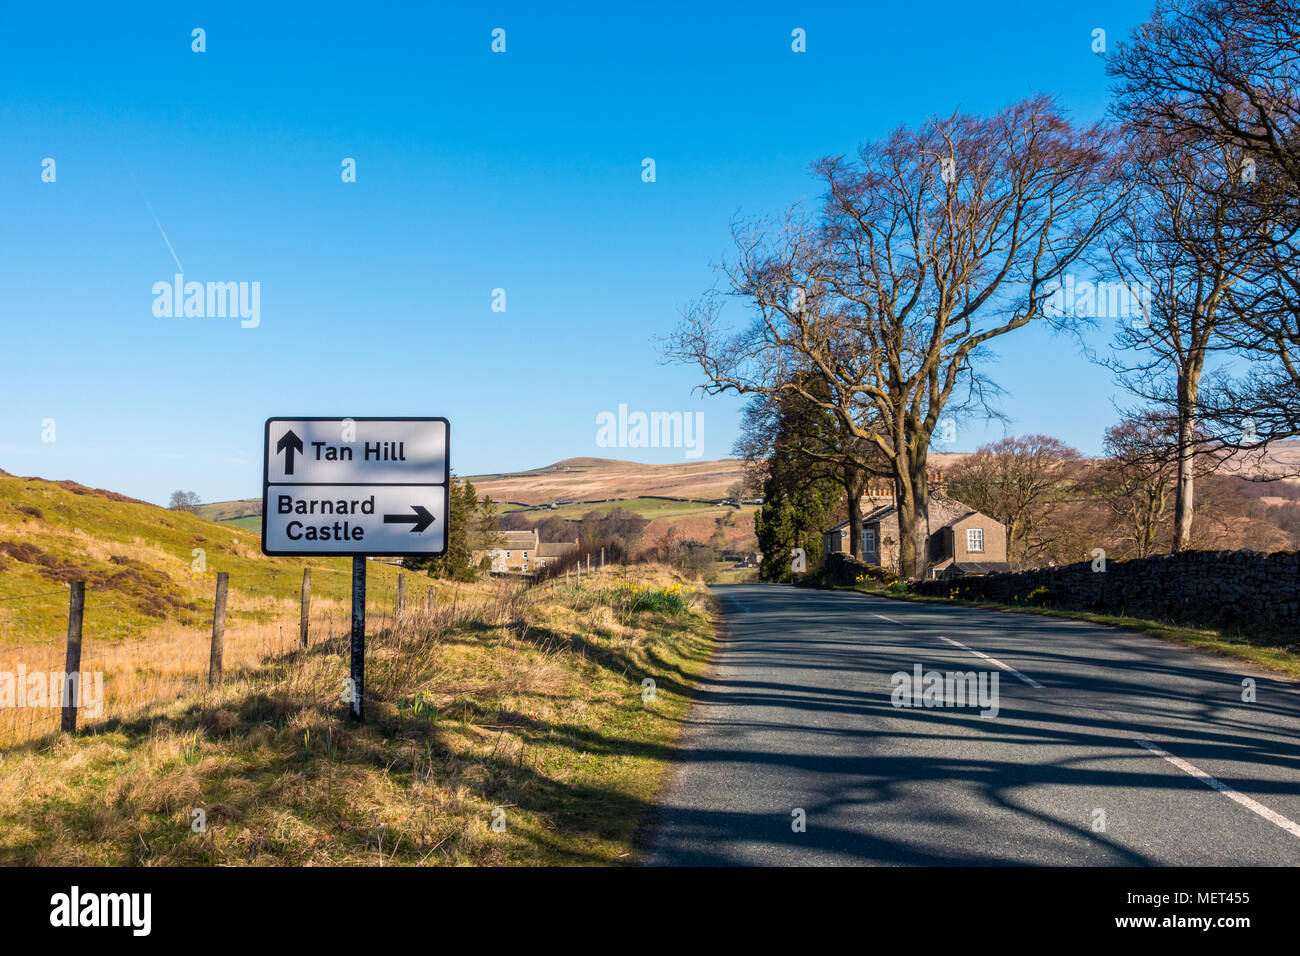 Looking up the road with a Tan Hill and Barnard Castle sign in the Arkengarthdale valley, Swaledale, Yorkshire Dales, UK - Stock Image